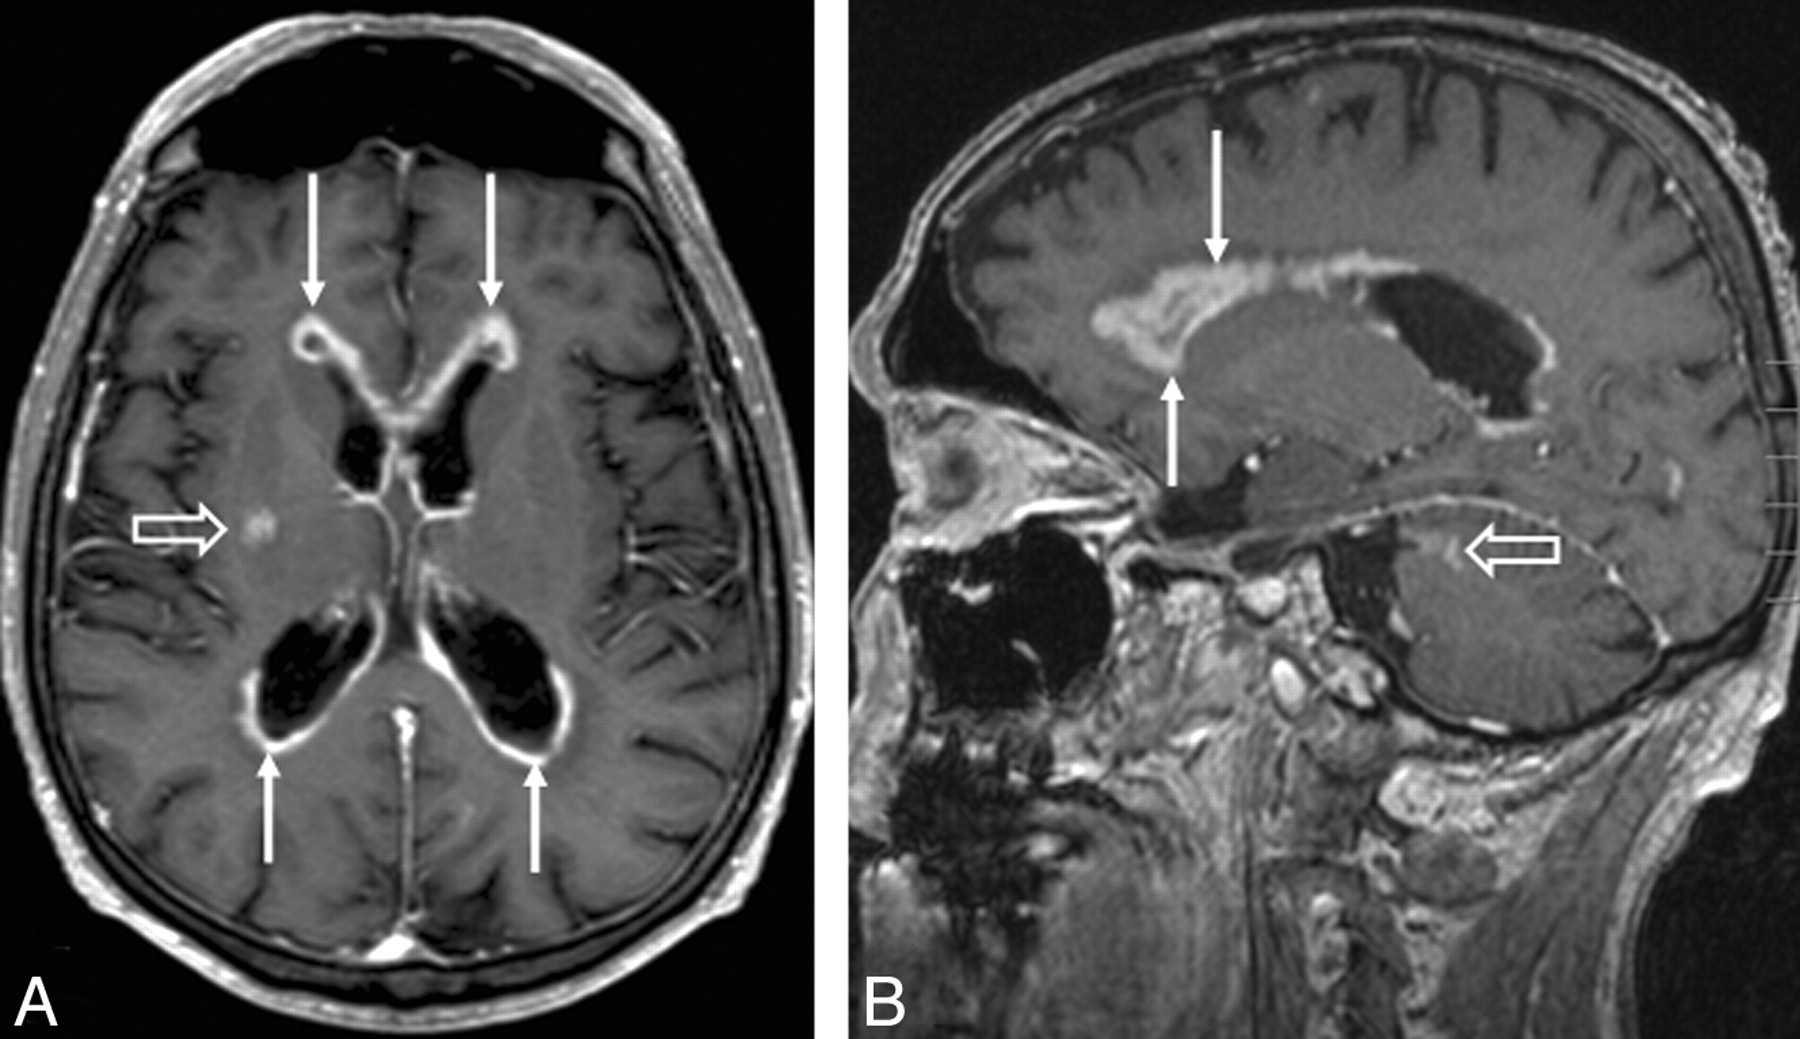 central nervous system lymphoma characteristic findings on